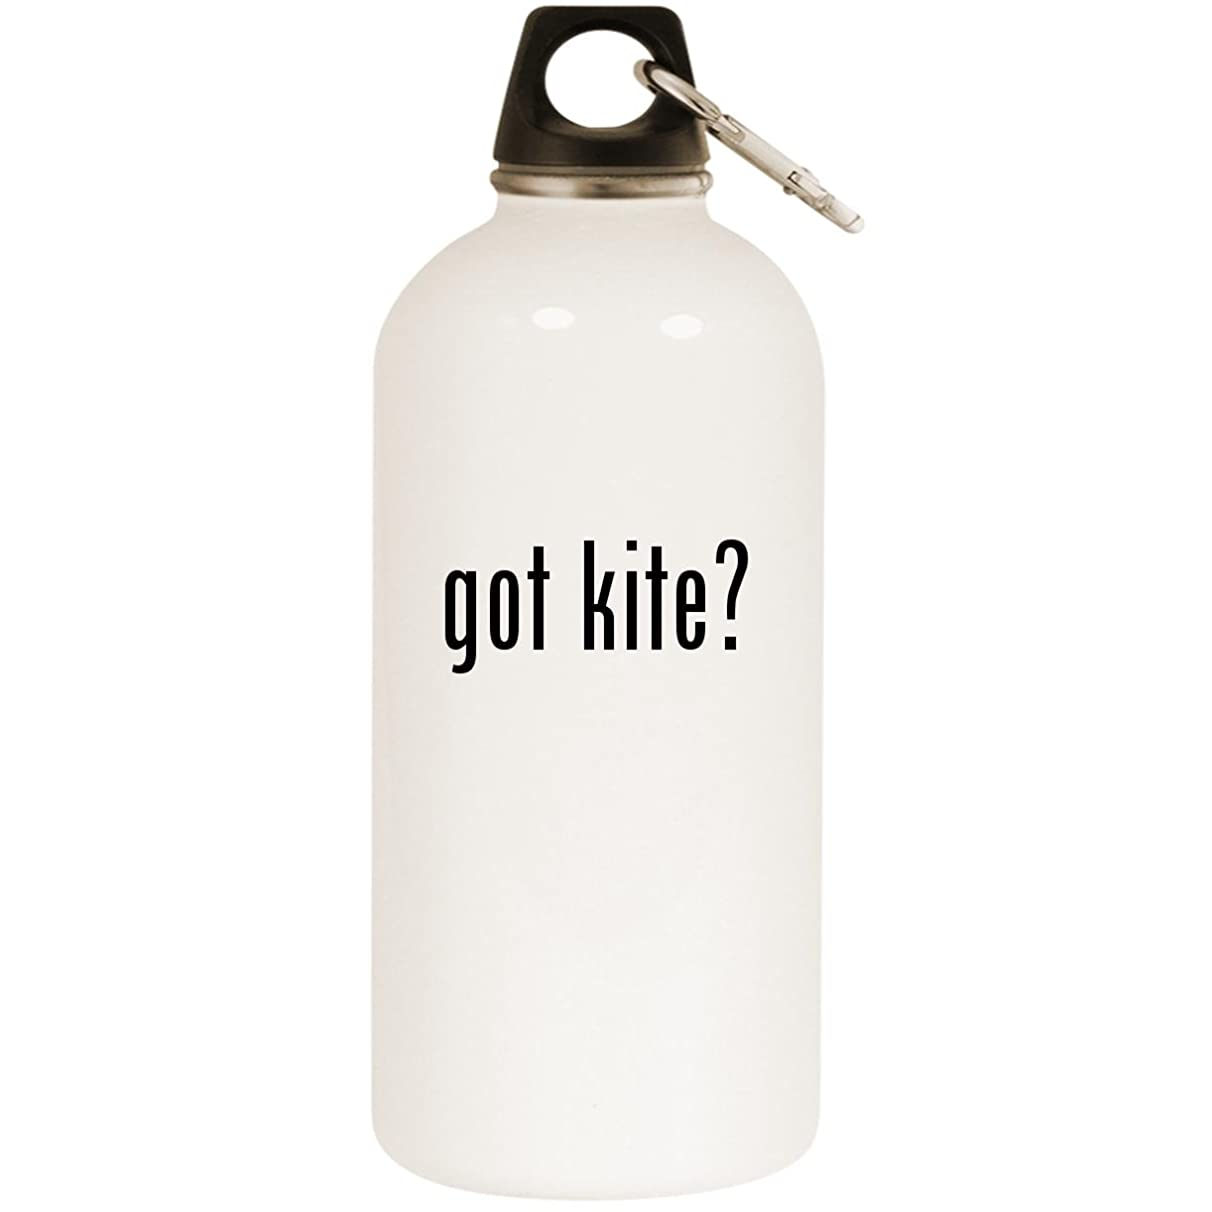 Molandra Products got Kite? - White 20oz Stainless Steel Water Bottle with Carabiner